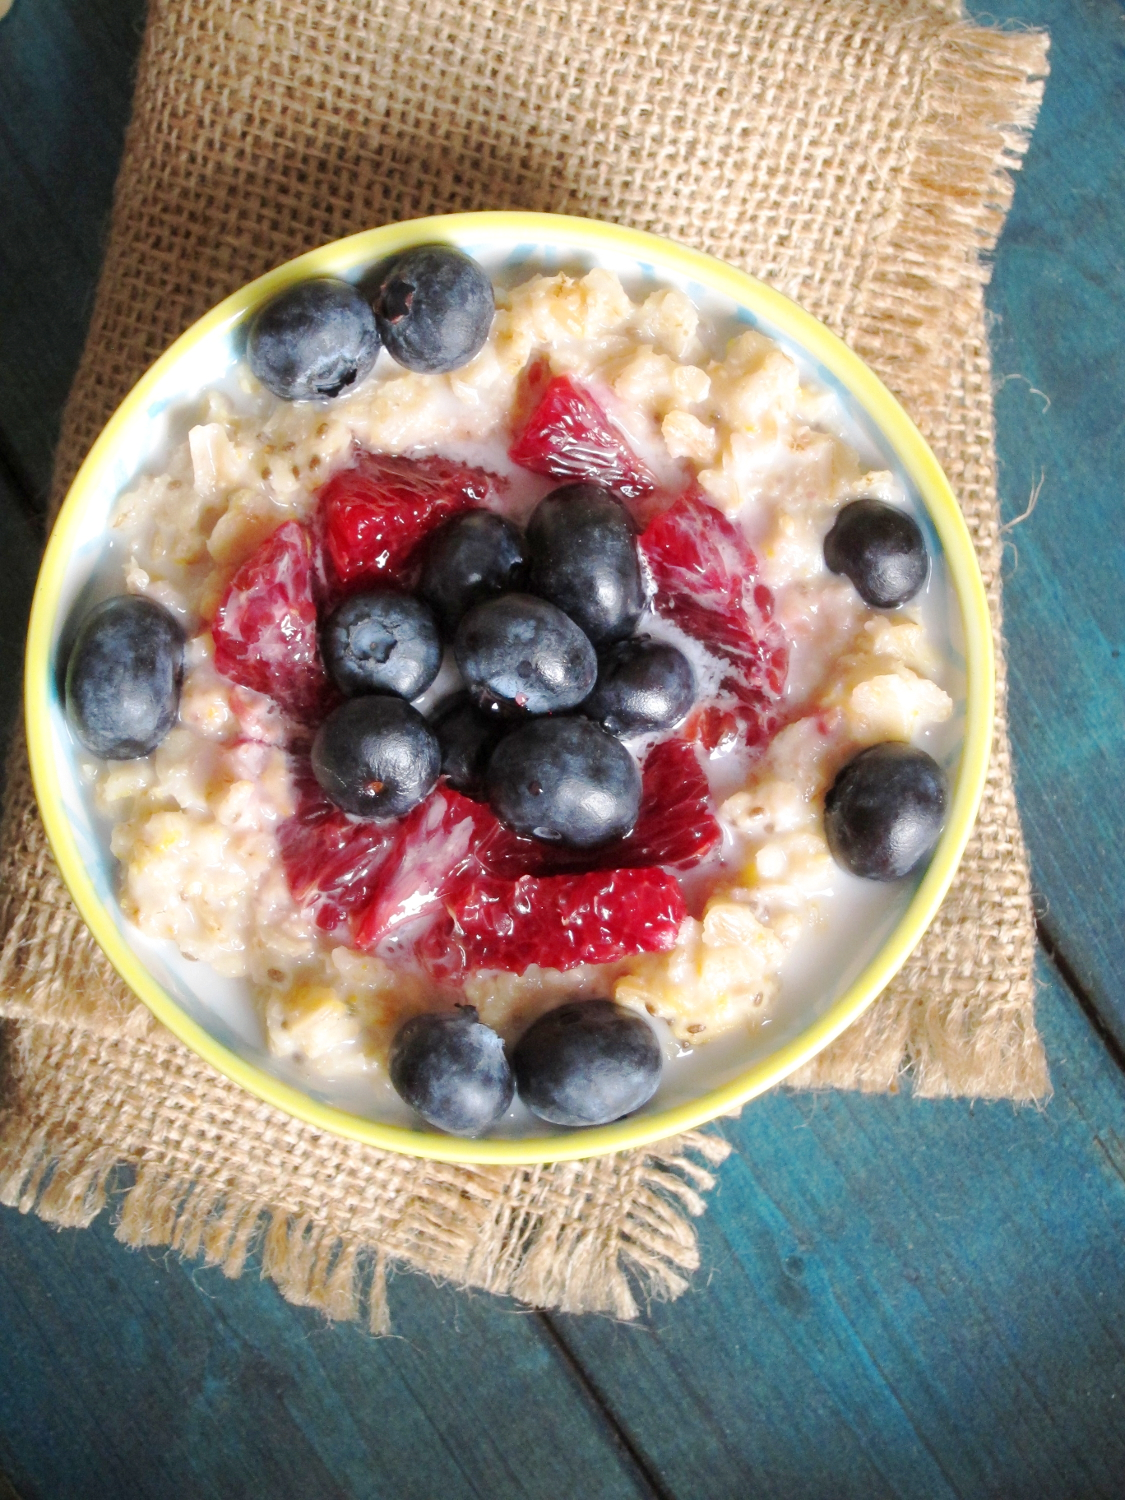 how to cook blueberries in oatmeal